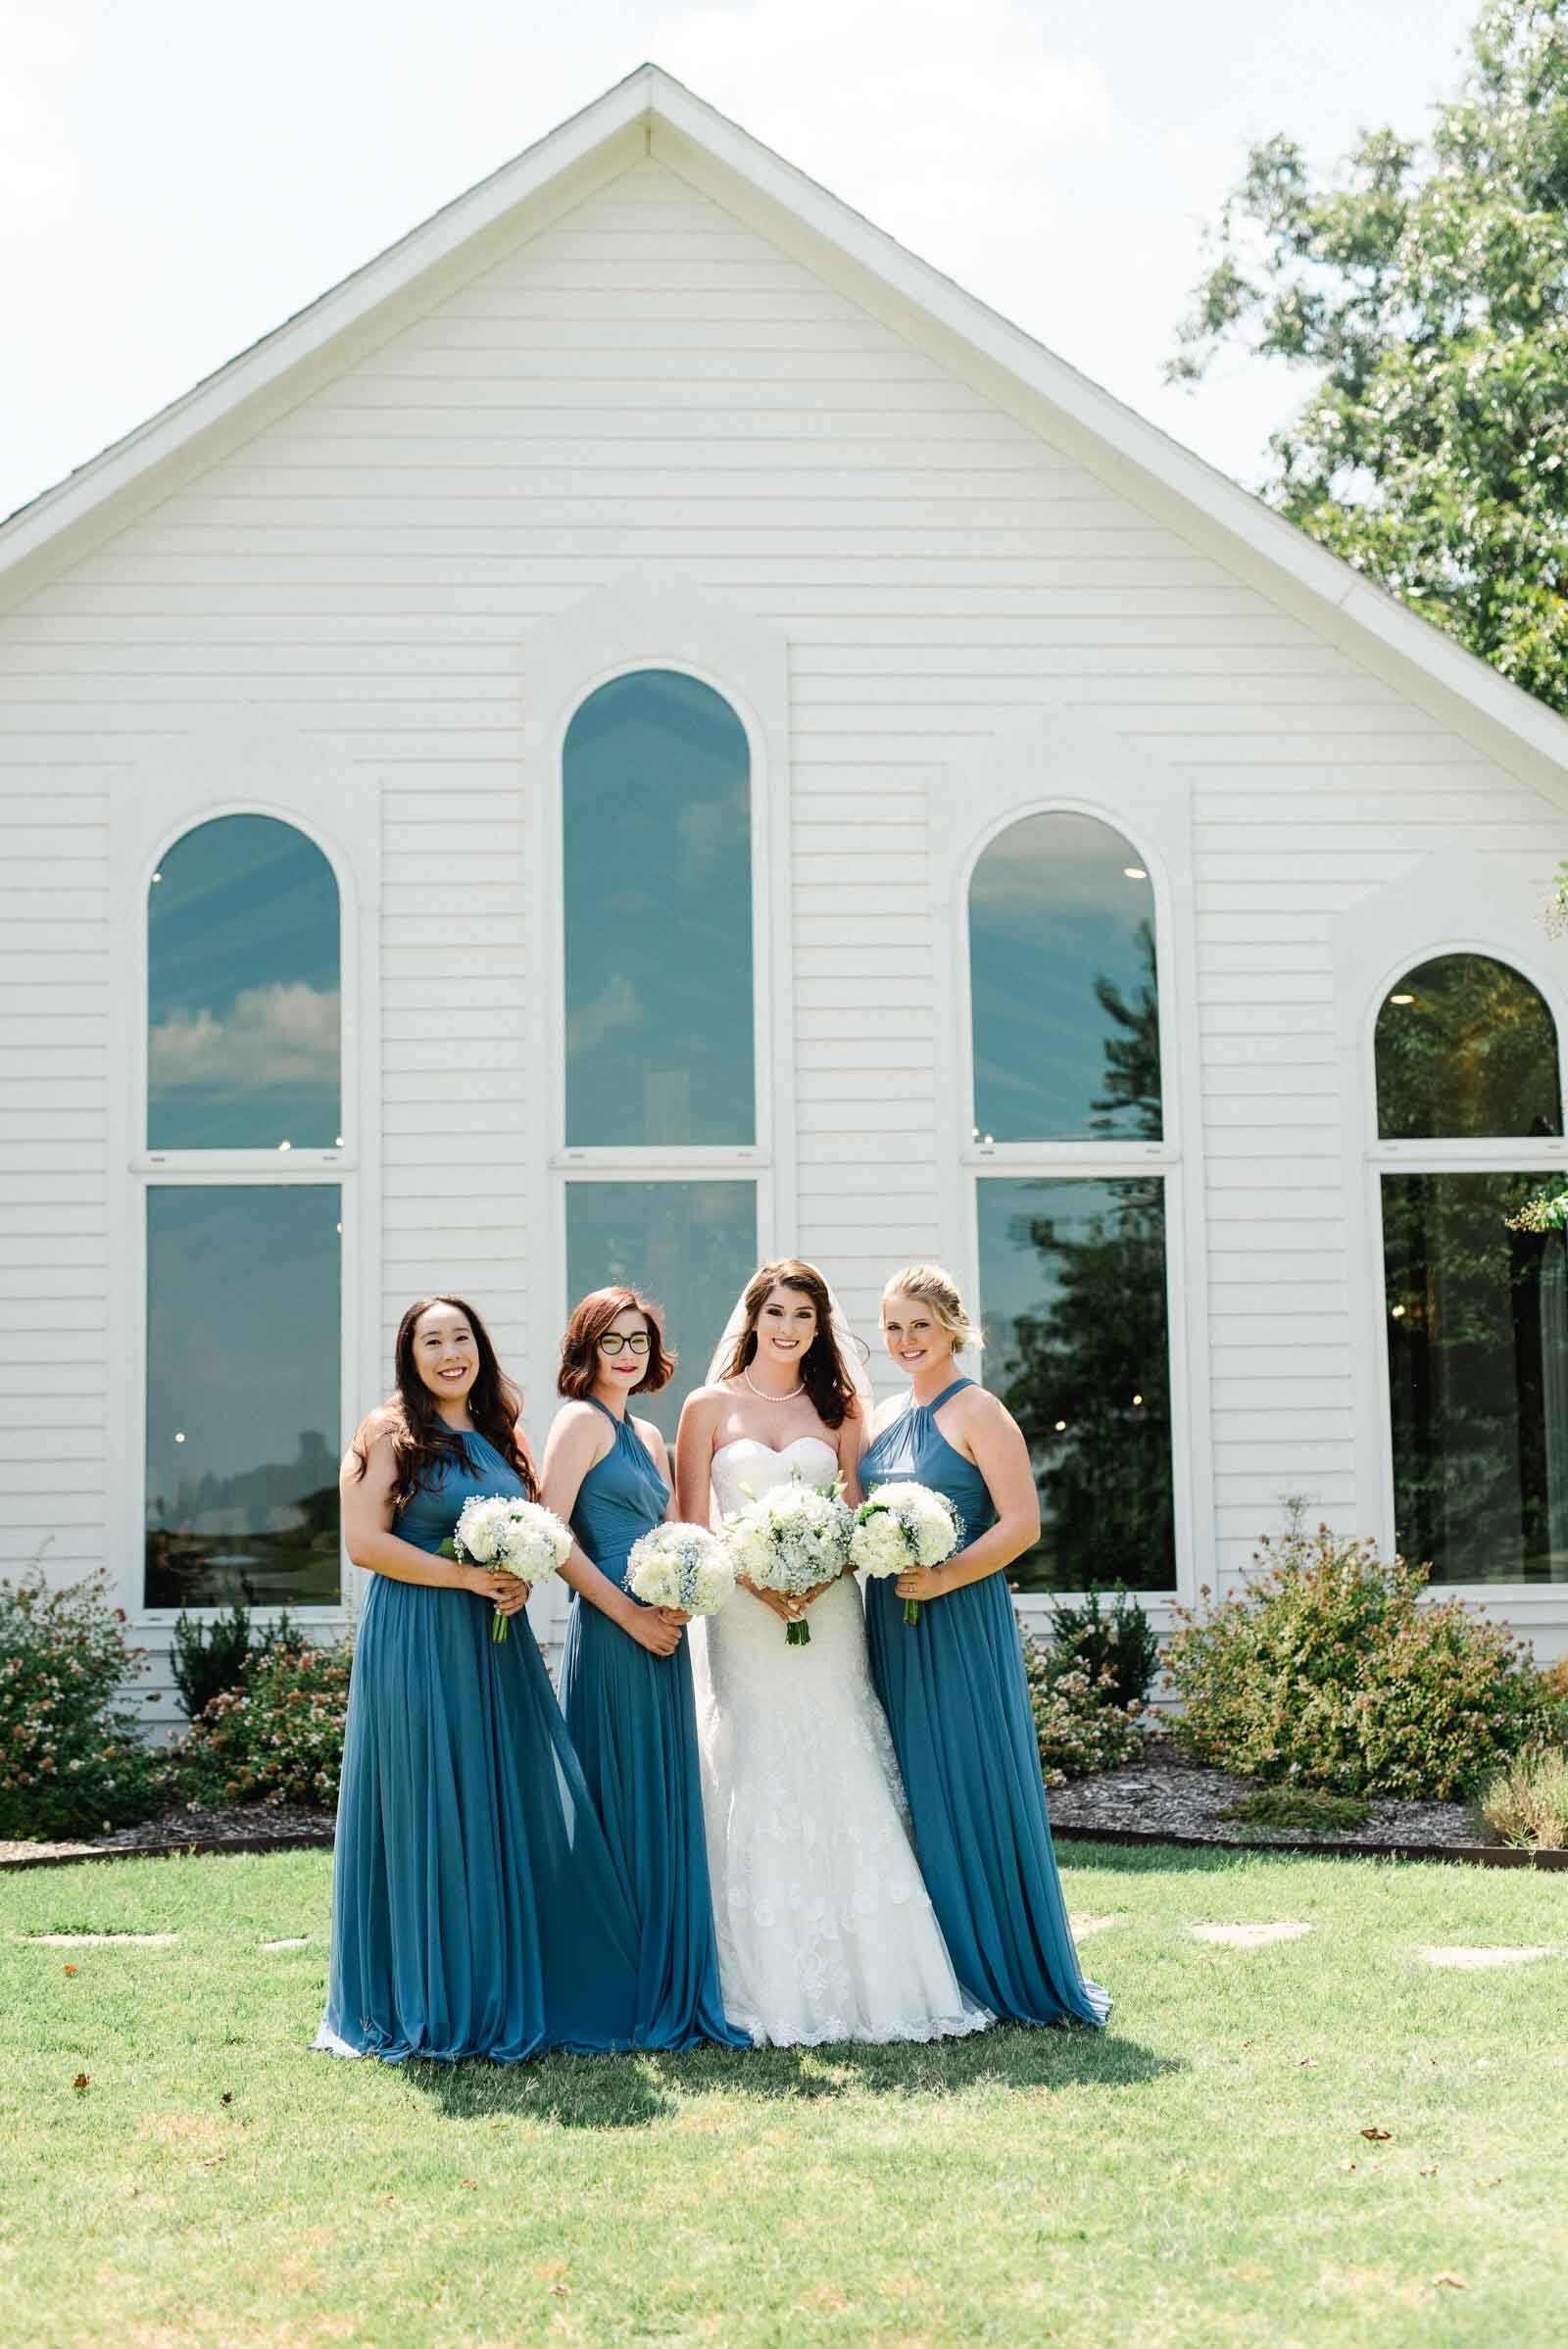 JenSymes_Emilee-Hoyt-Wedding-351.jpg